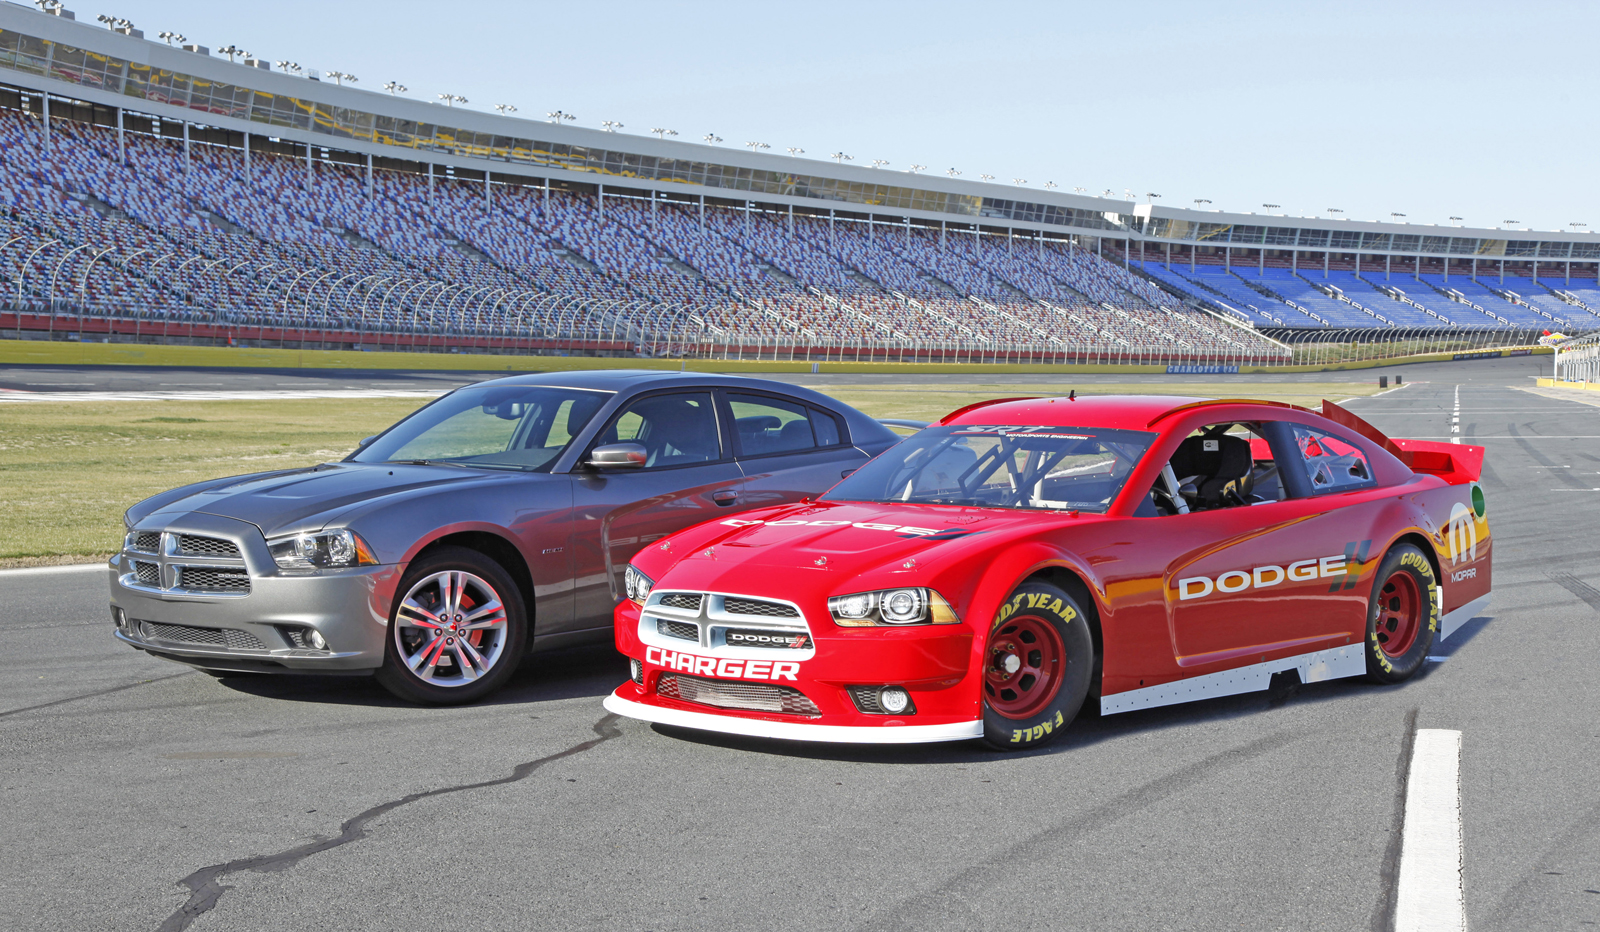 Dodge Isn't Returning To NASCAR Cup Anytime Soon